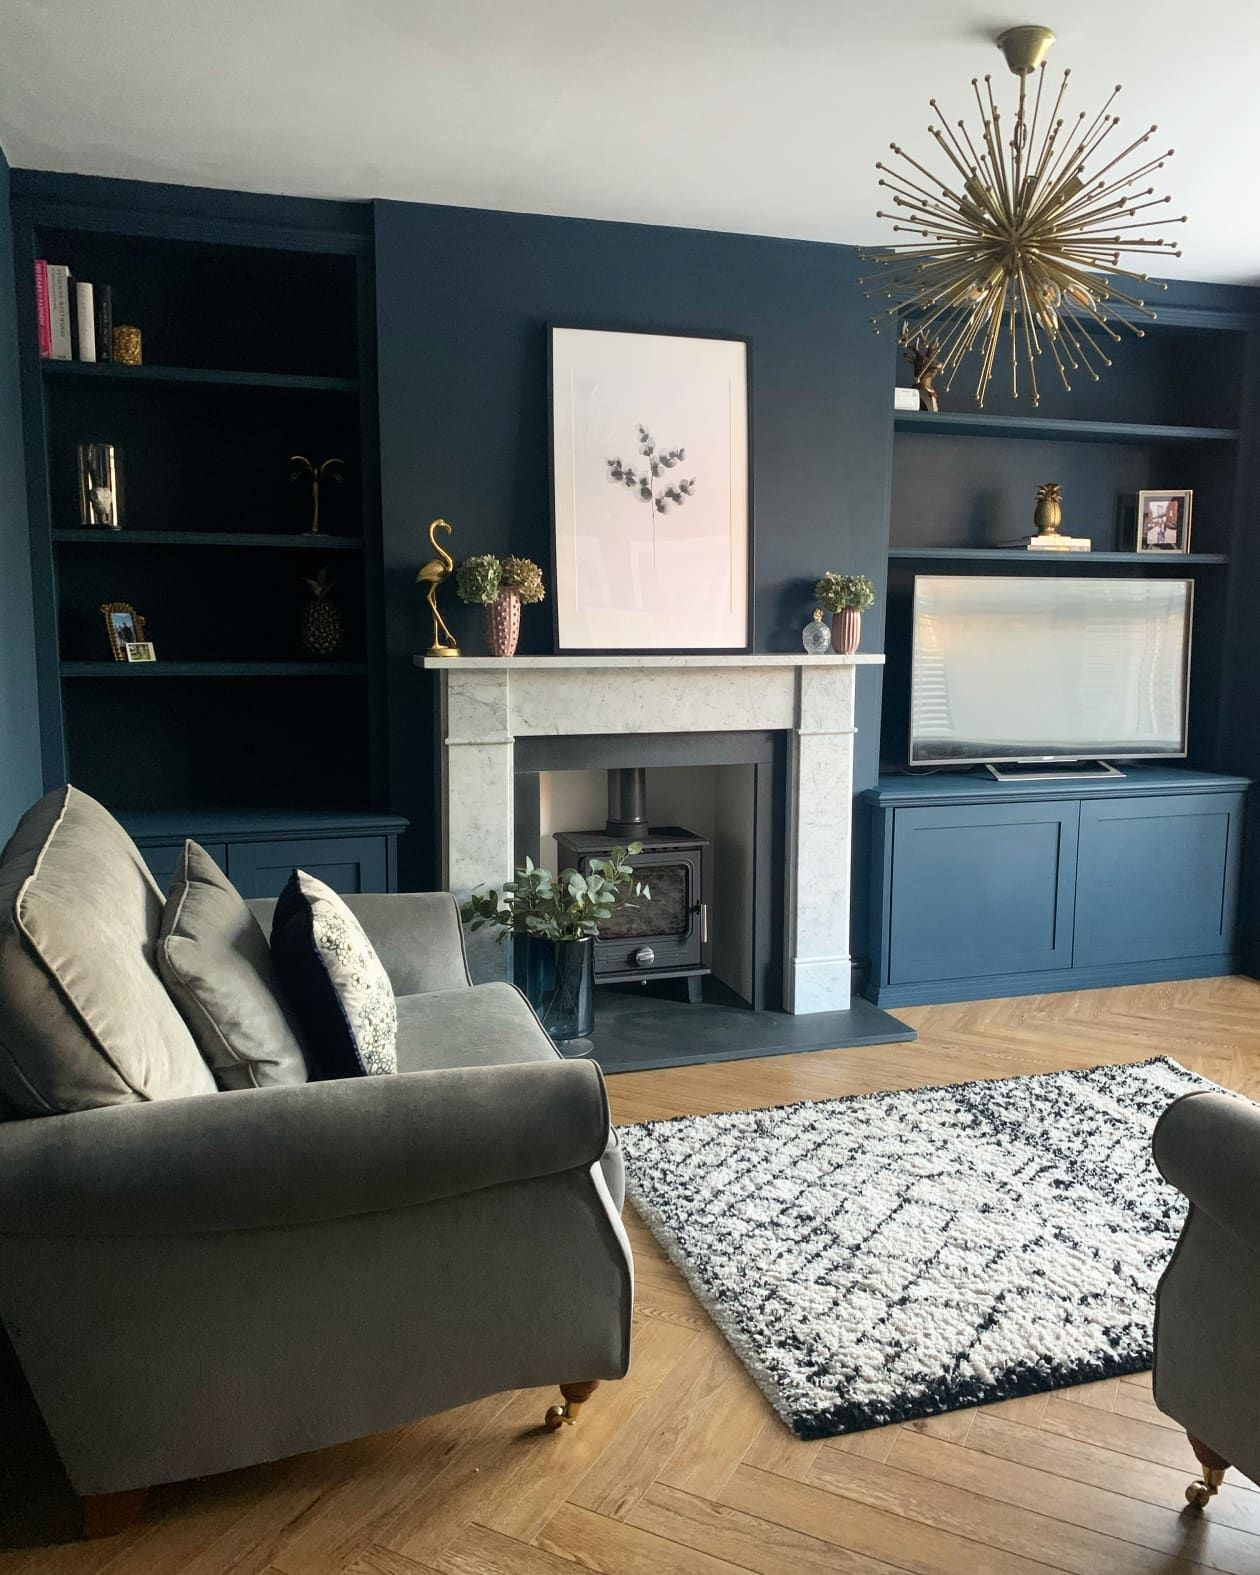 Oh Look Another Uk Home With A Deliciously Dark And Dramatic Color Palette Lounge Room Styling Blue Living Room Color Blue Living Room